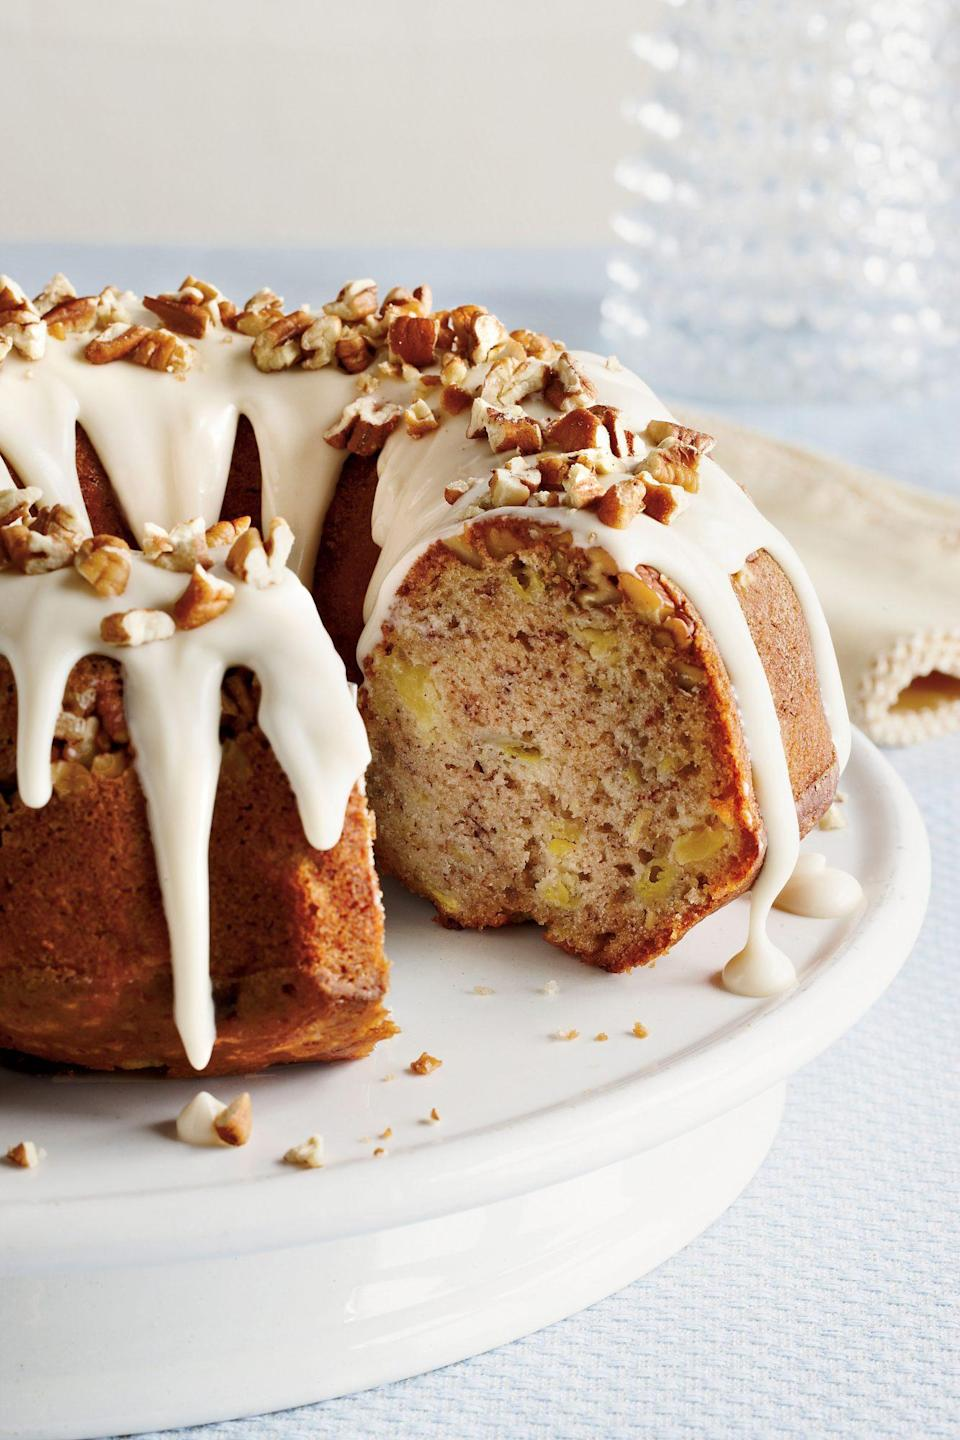 """<p><strong>Recipe: <a href=""""https://www.southernliving.com/recipes/hummingbird-bundt-cake-recipe"""" rel=""""nofollow noopener"""" target=""""_blank"""" data-ylk=""""slk:Hummingbird Bundt Cake"""" class=""""link rapid-noclick-resp"""">Hummingbird Bundt Cake</a></strong></p> <p>Instead of spending time icing cake layers, try this old-fashioned cake in your Bundt pan for presentation that's just as pretty in so much less time.</p>"""